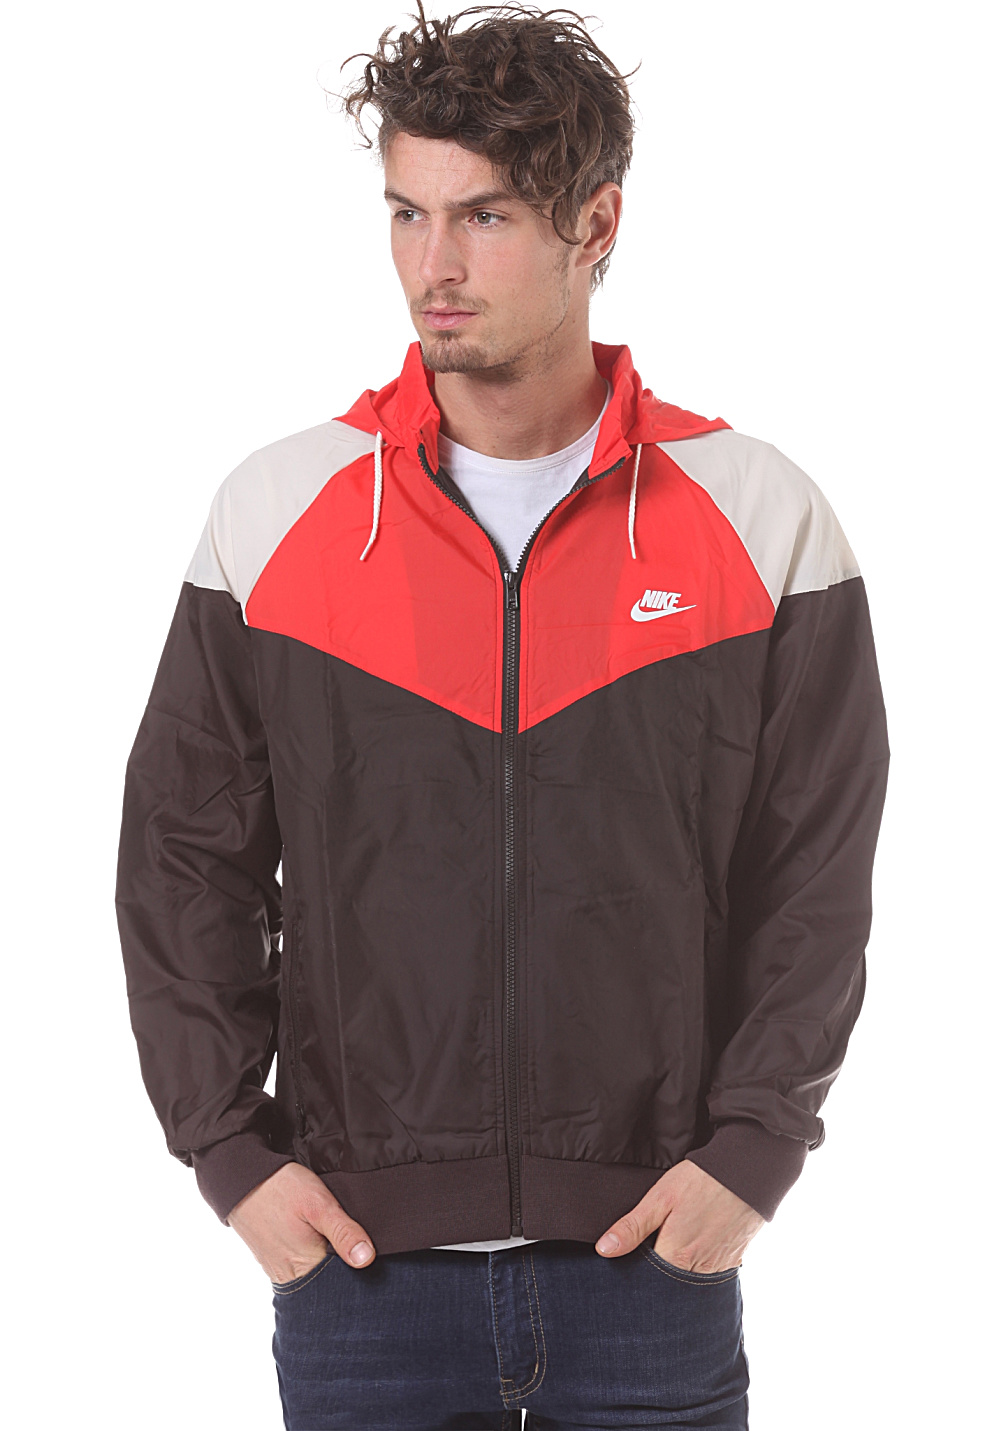 Next. This product is currently out of stock. NIKE SPORTSWEAR. RU Heritage  Windrunner - Jacket for Men 6e7dfa494